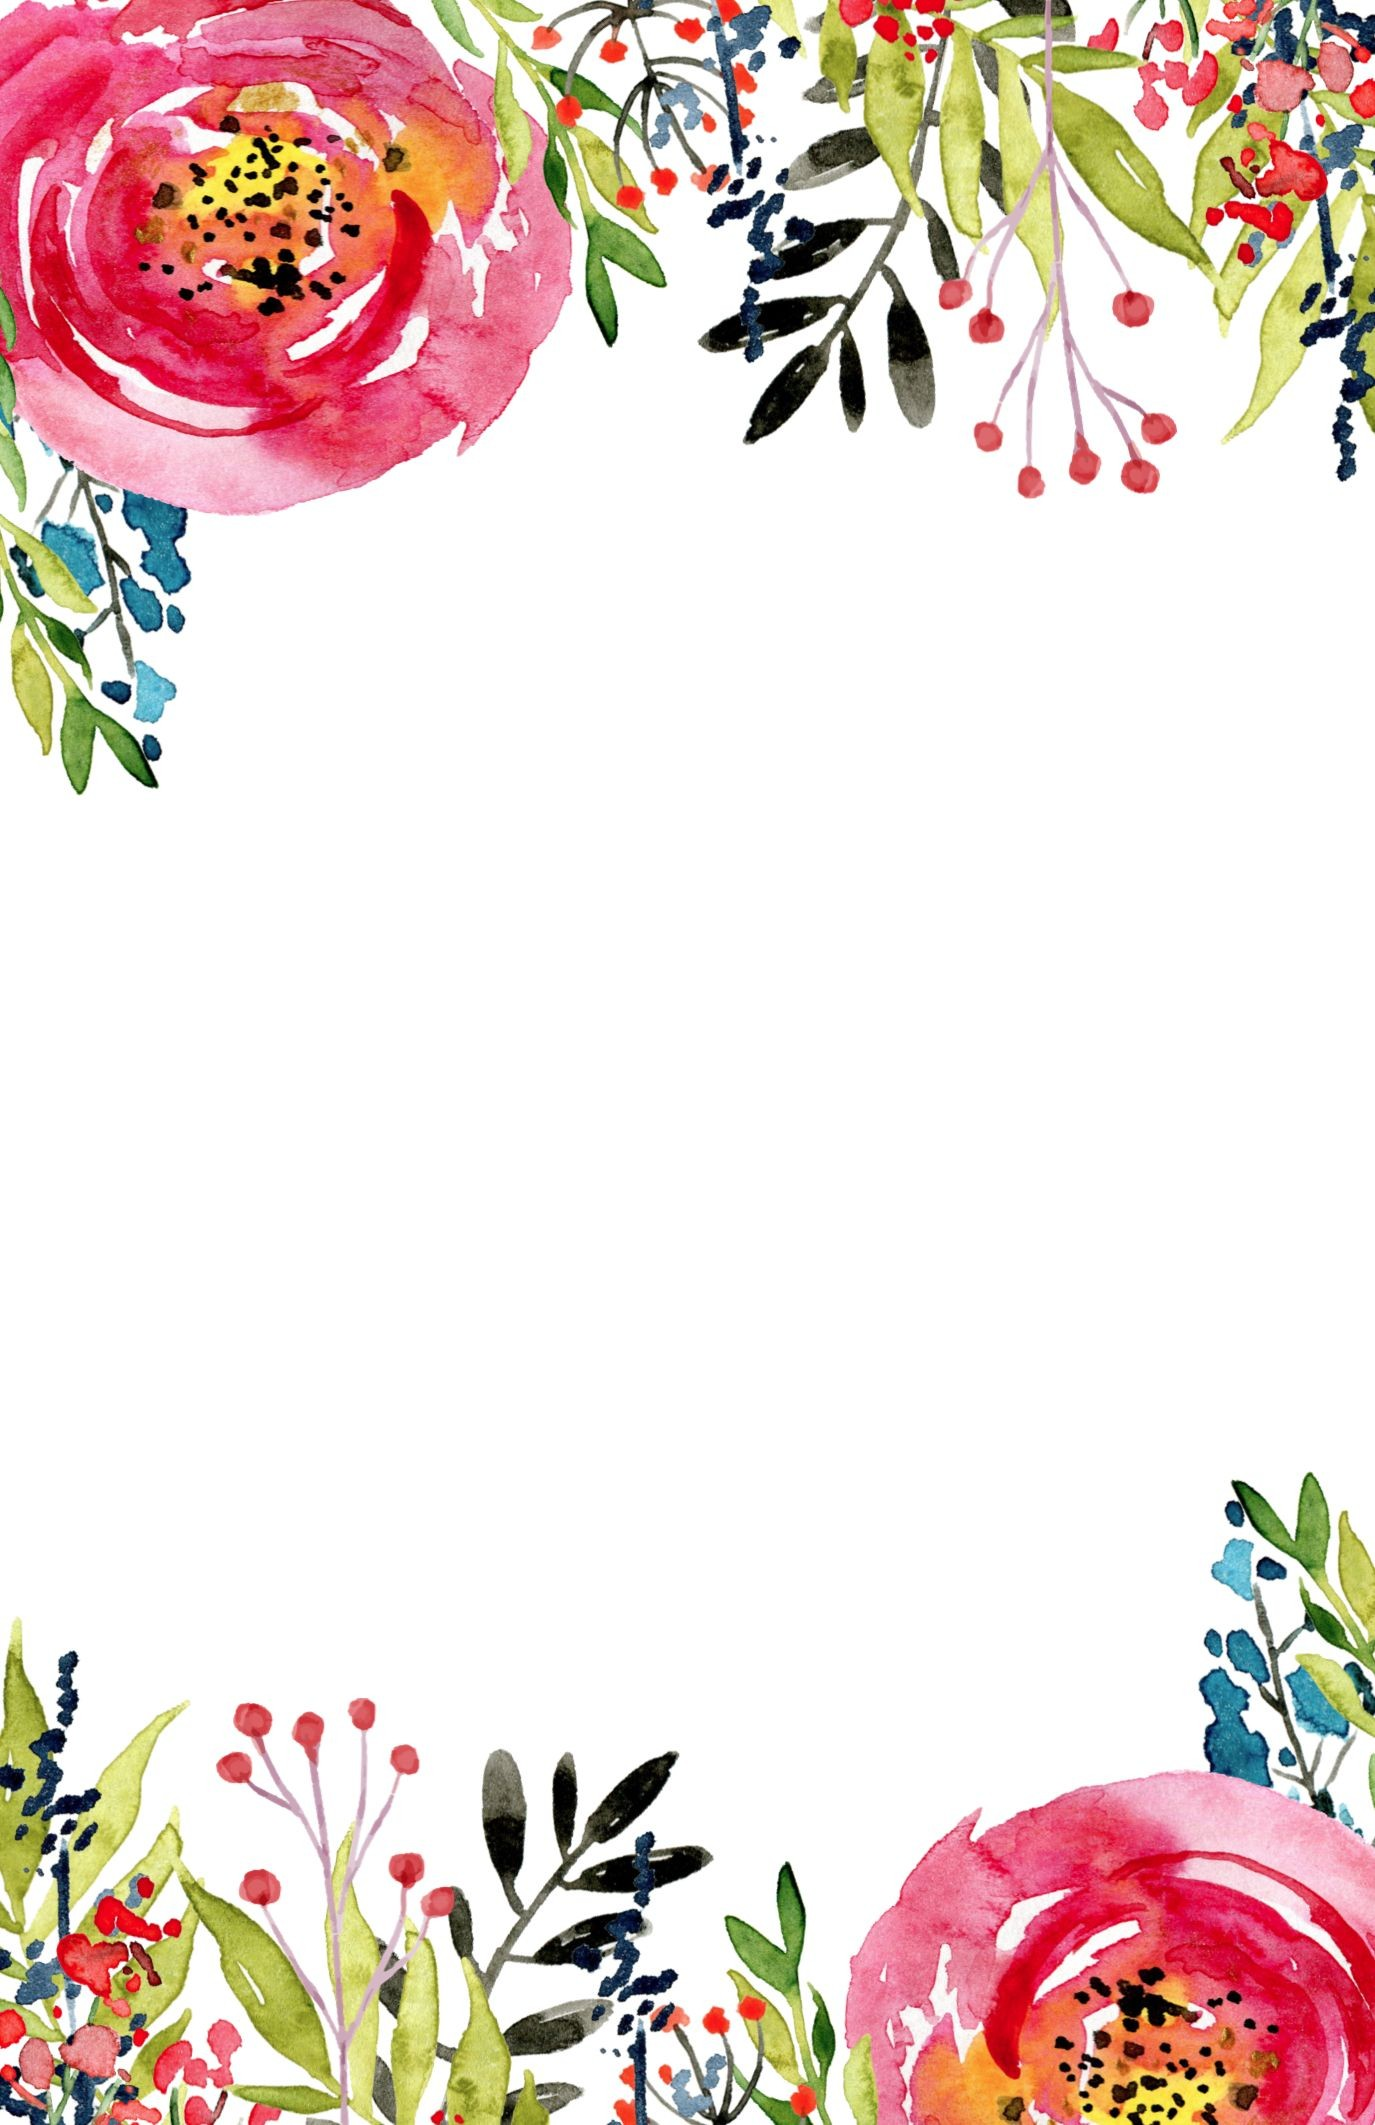 Flower intvitation template 1 375—2 125 pixeles